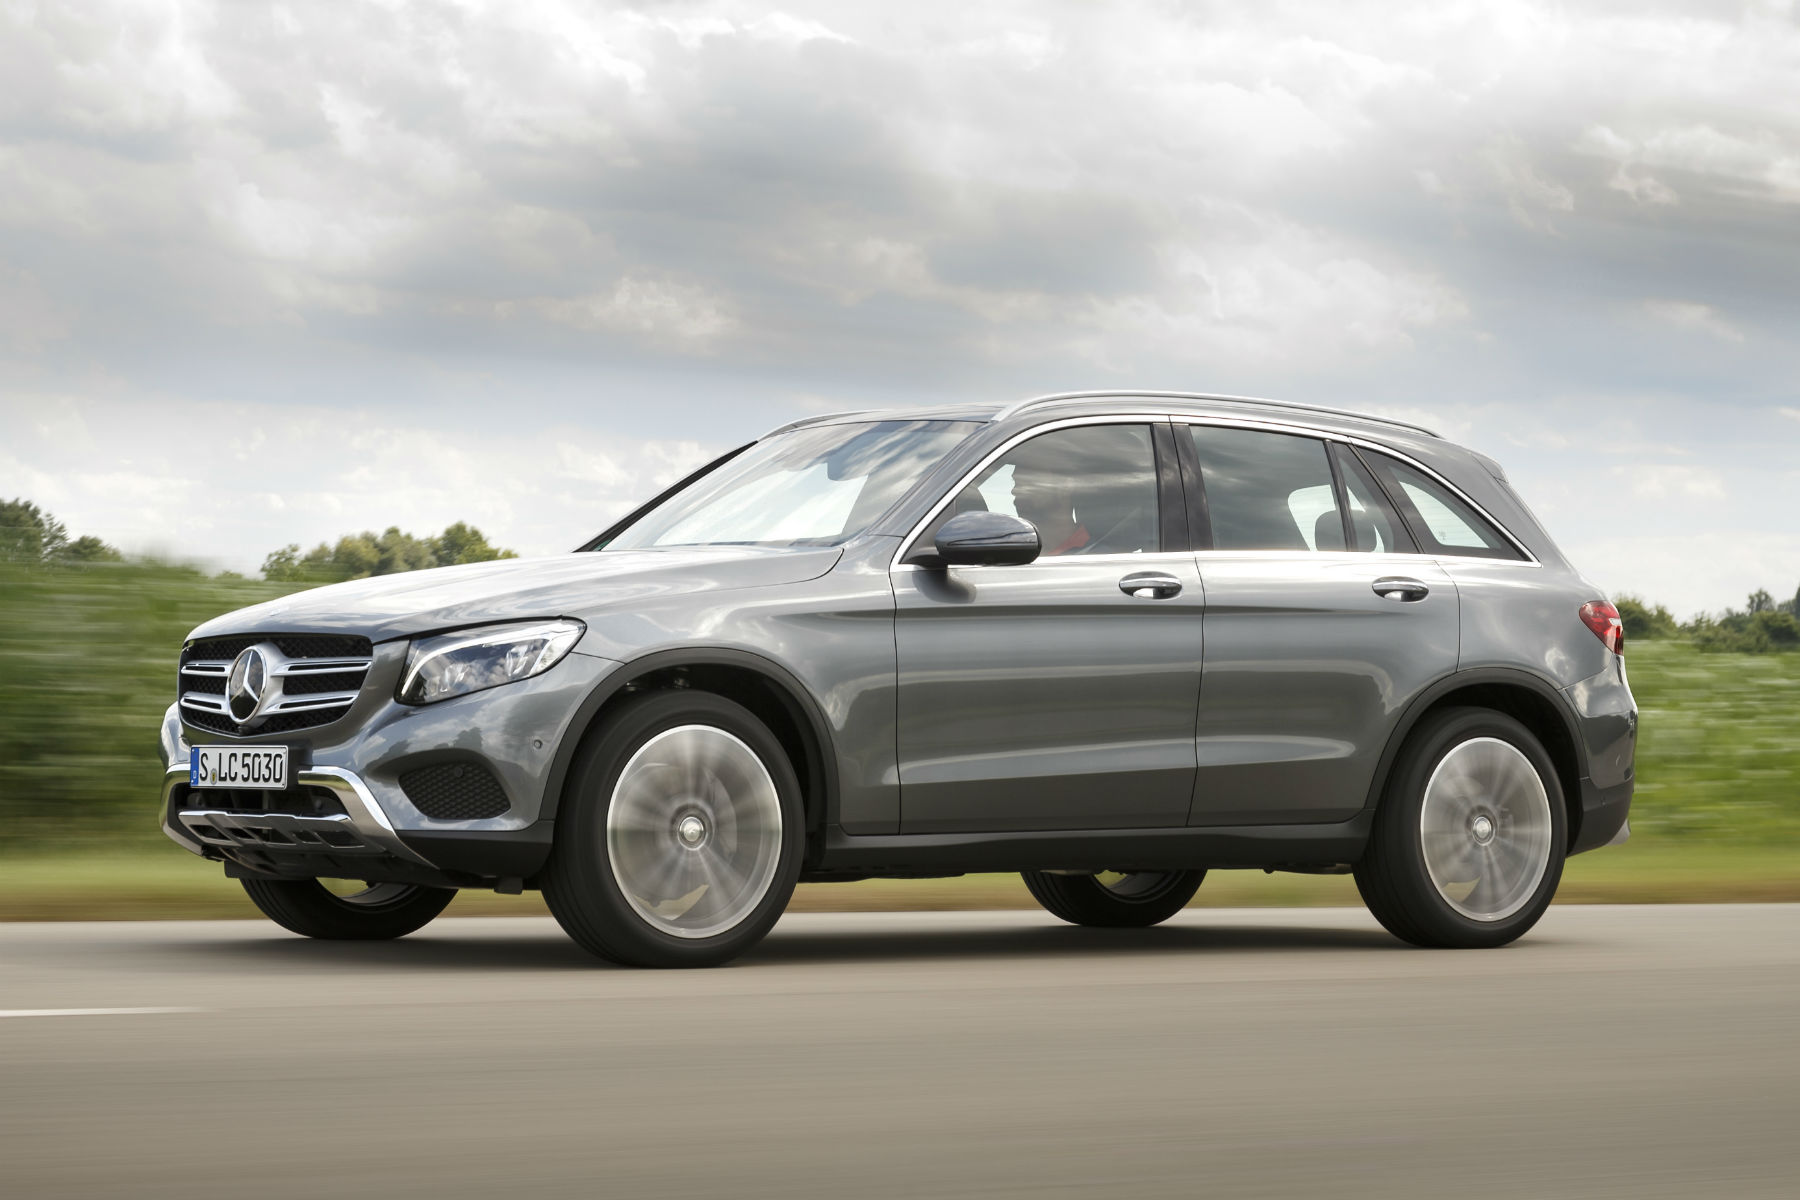 2015 Audi Q5 >> Mercedes GLC review: 2015 first drive